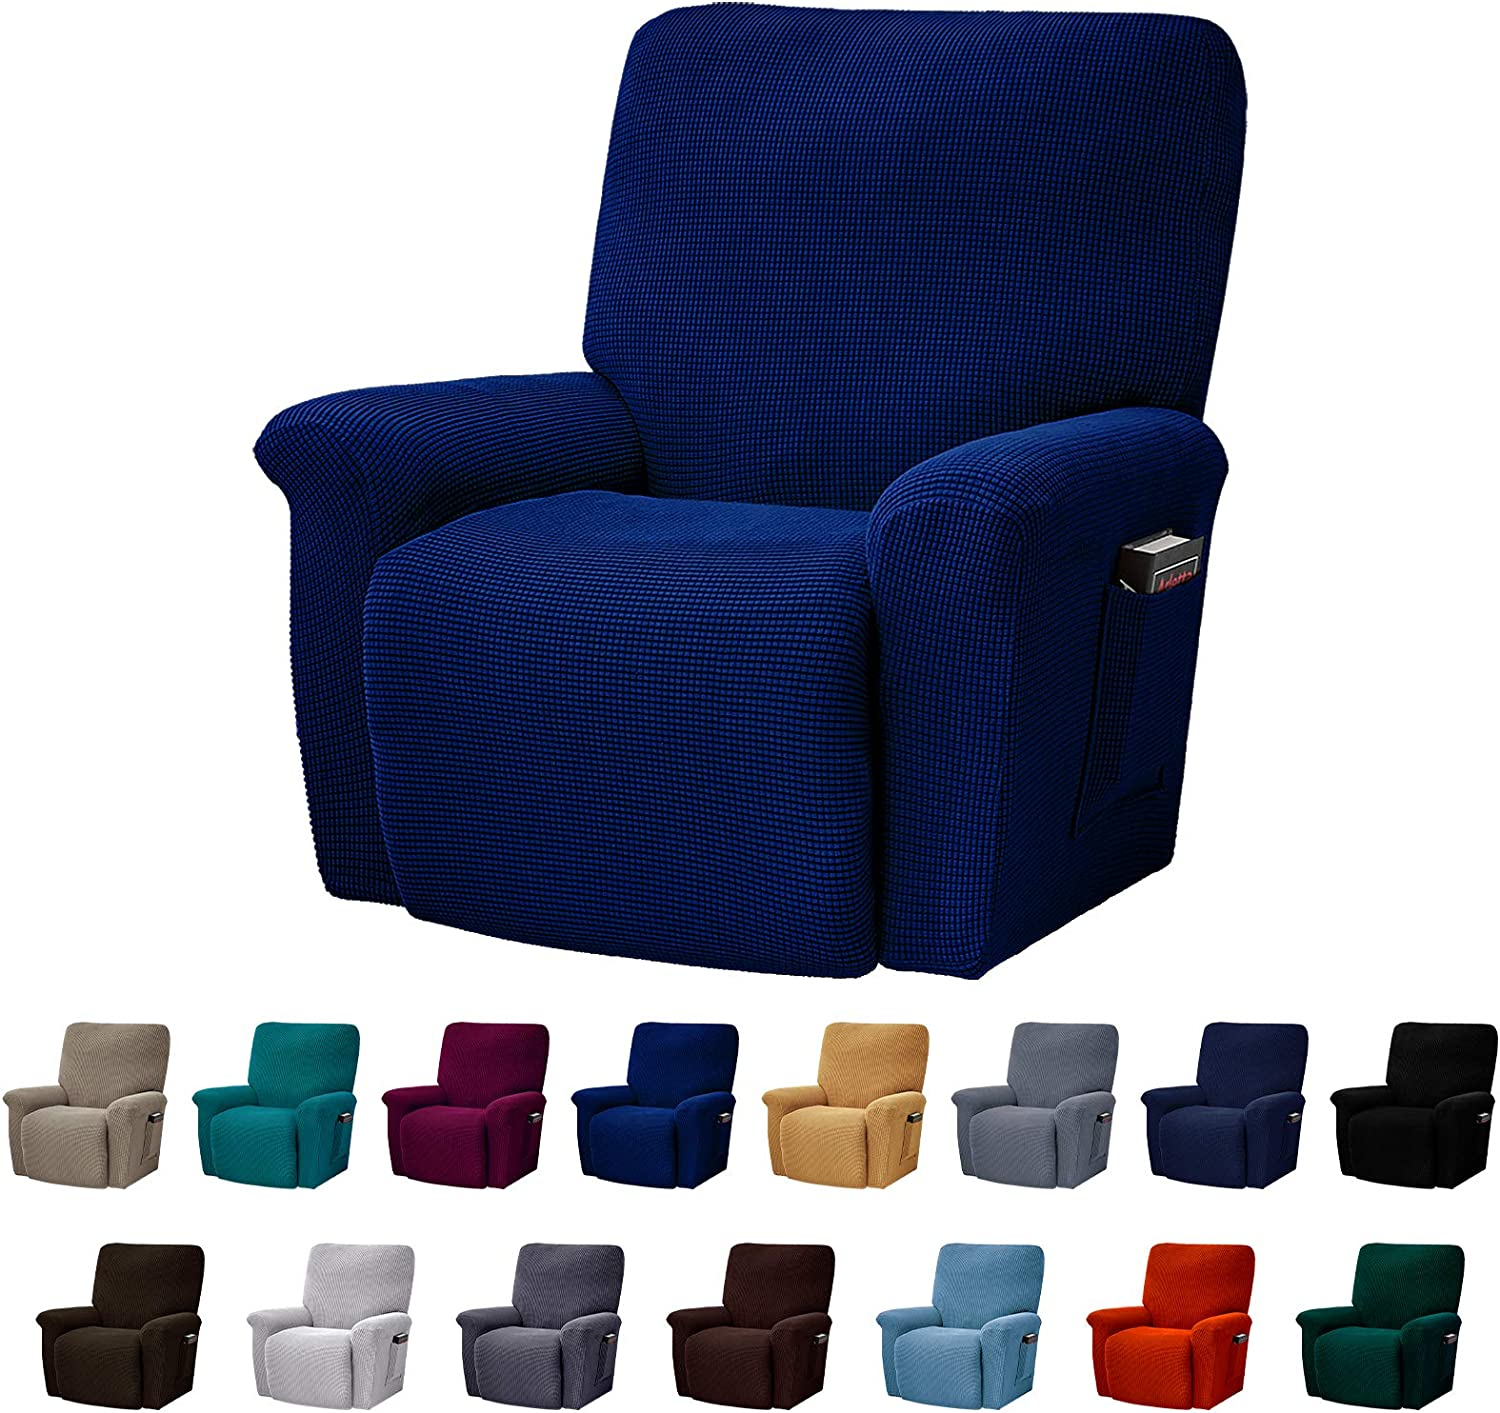 AlGaiety Stretch Recliner Slipcover Sofa Cover 4 Separate Pieces/1 Set Spandex Jacquard Fabric Furniture Protector Couch Cover with Elastic Bottom for Living Room(Recliner,Classic Blue)